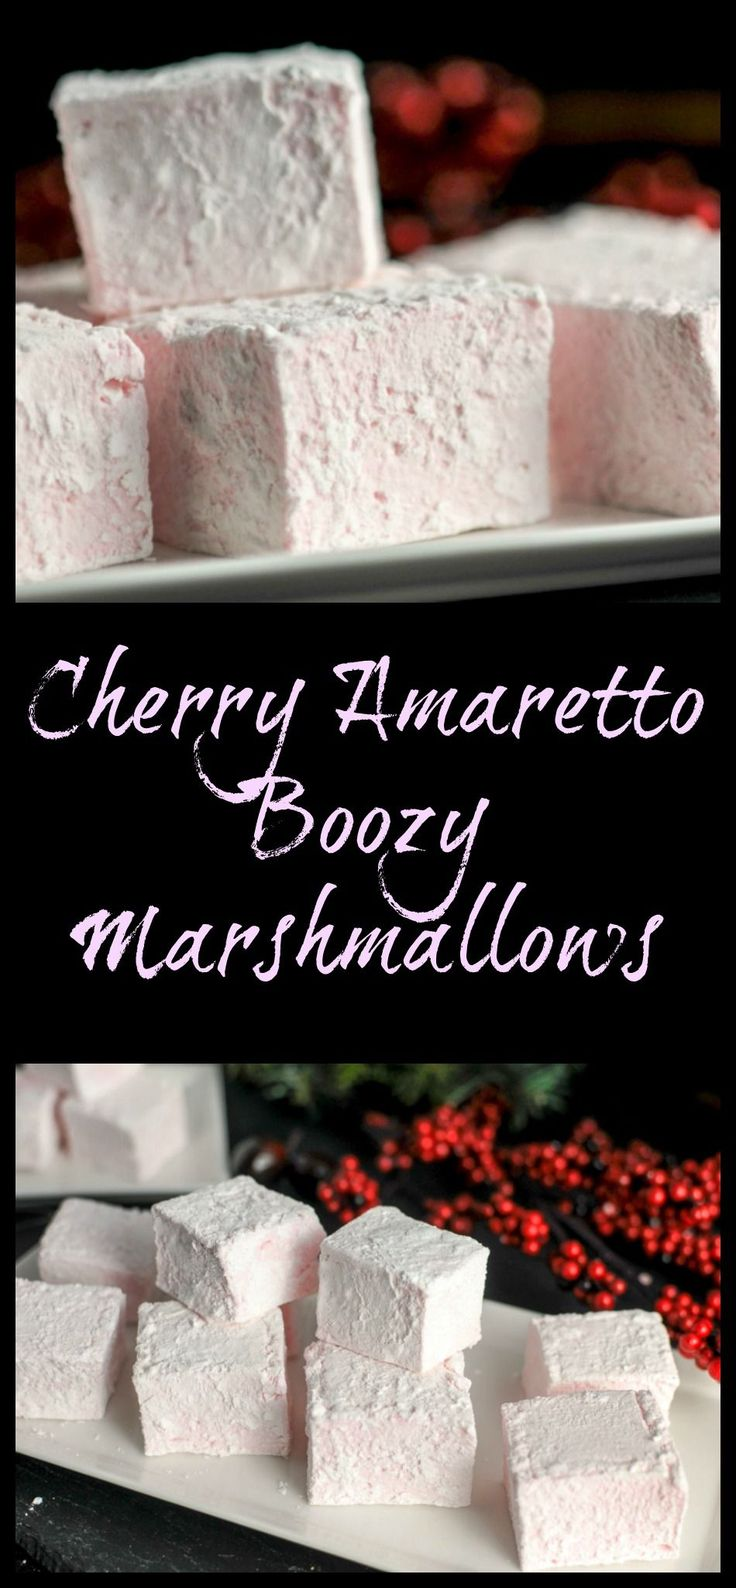 Cherry Amaretto Boozy Marshmallows - Dessert, recipe, alcohol, cherry liqueur, treats, homemade, easy,